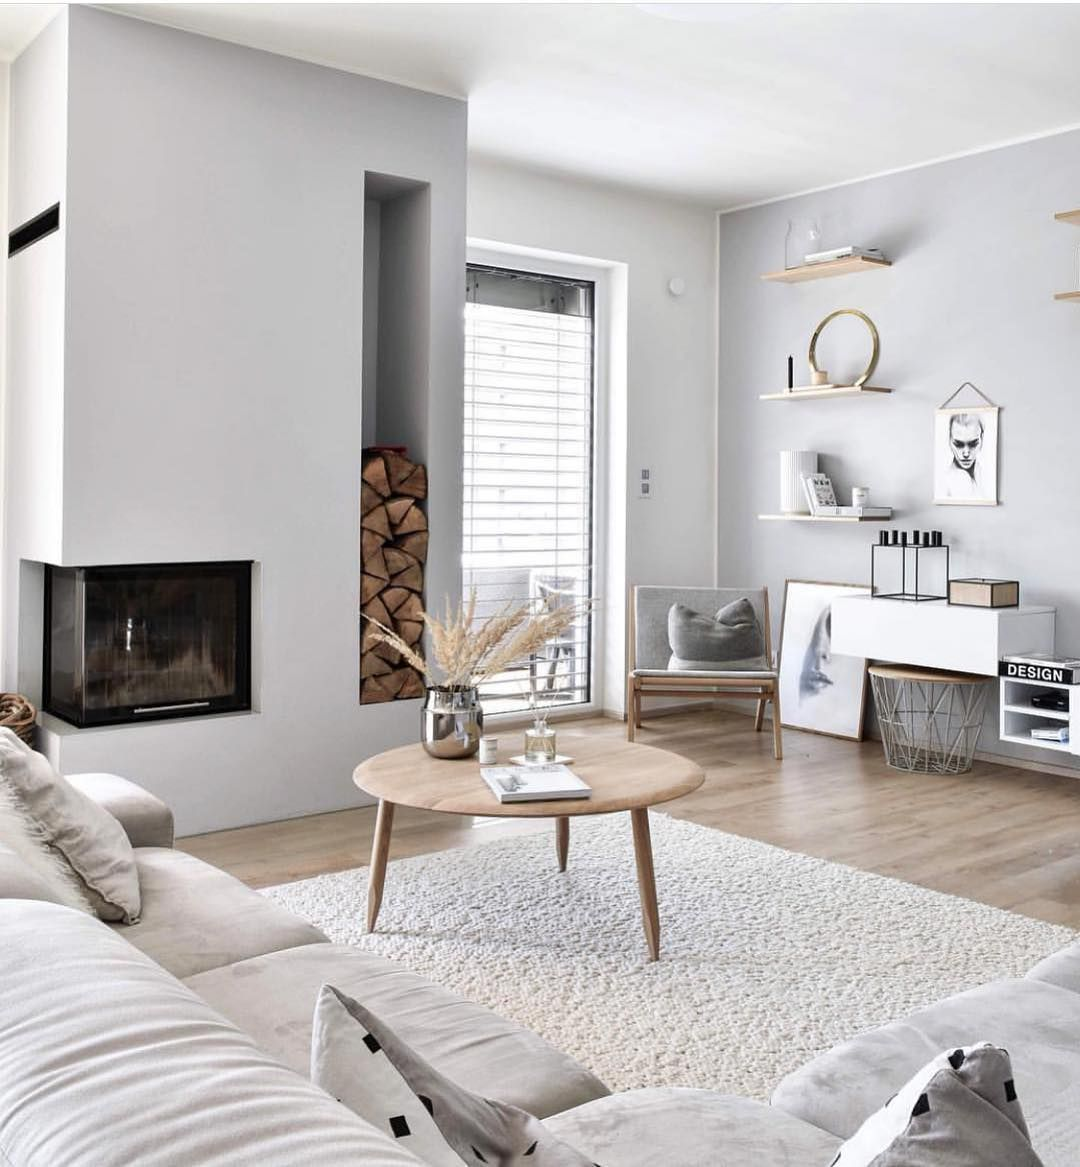 Bright Whites, Neutral Greys And Light, Natural Wood